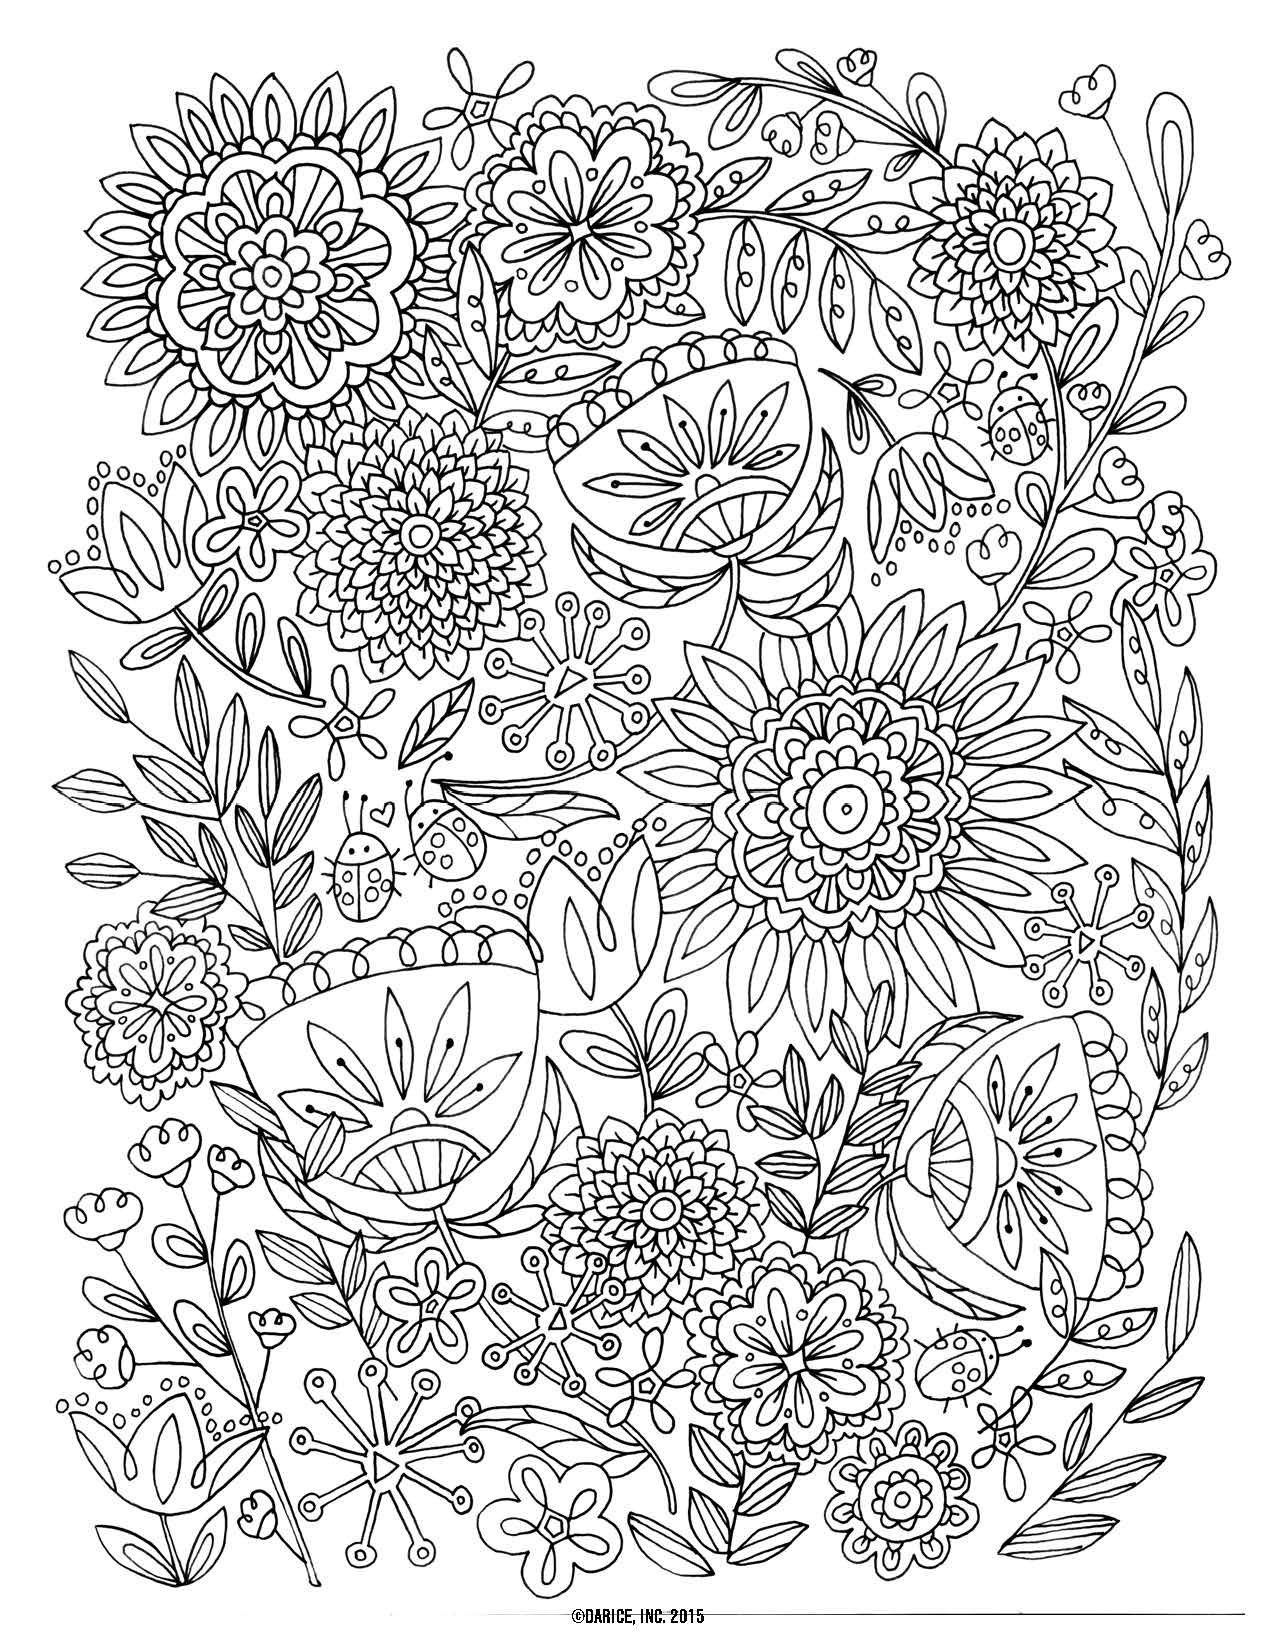 Free Printable Coloring Pages For Adults Landscapes Print Free Coloring Pages Printables Yis Malvorlagen Blumen Kostenlose Ausmalbilder Weihnachtsmalvorlagen